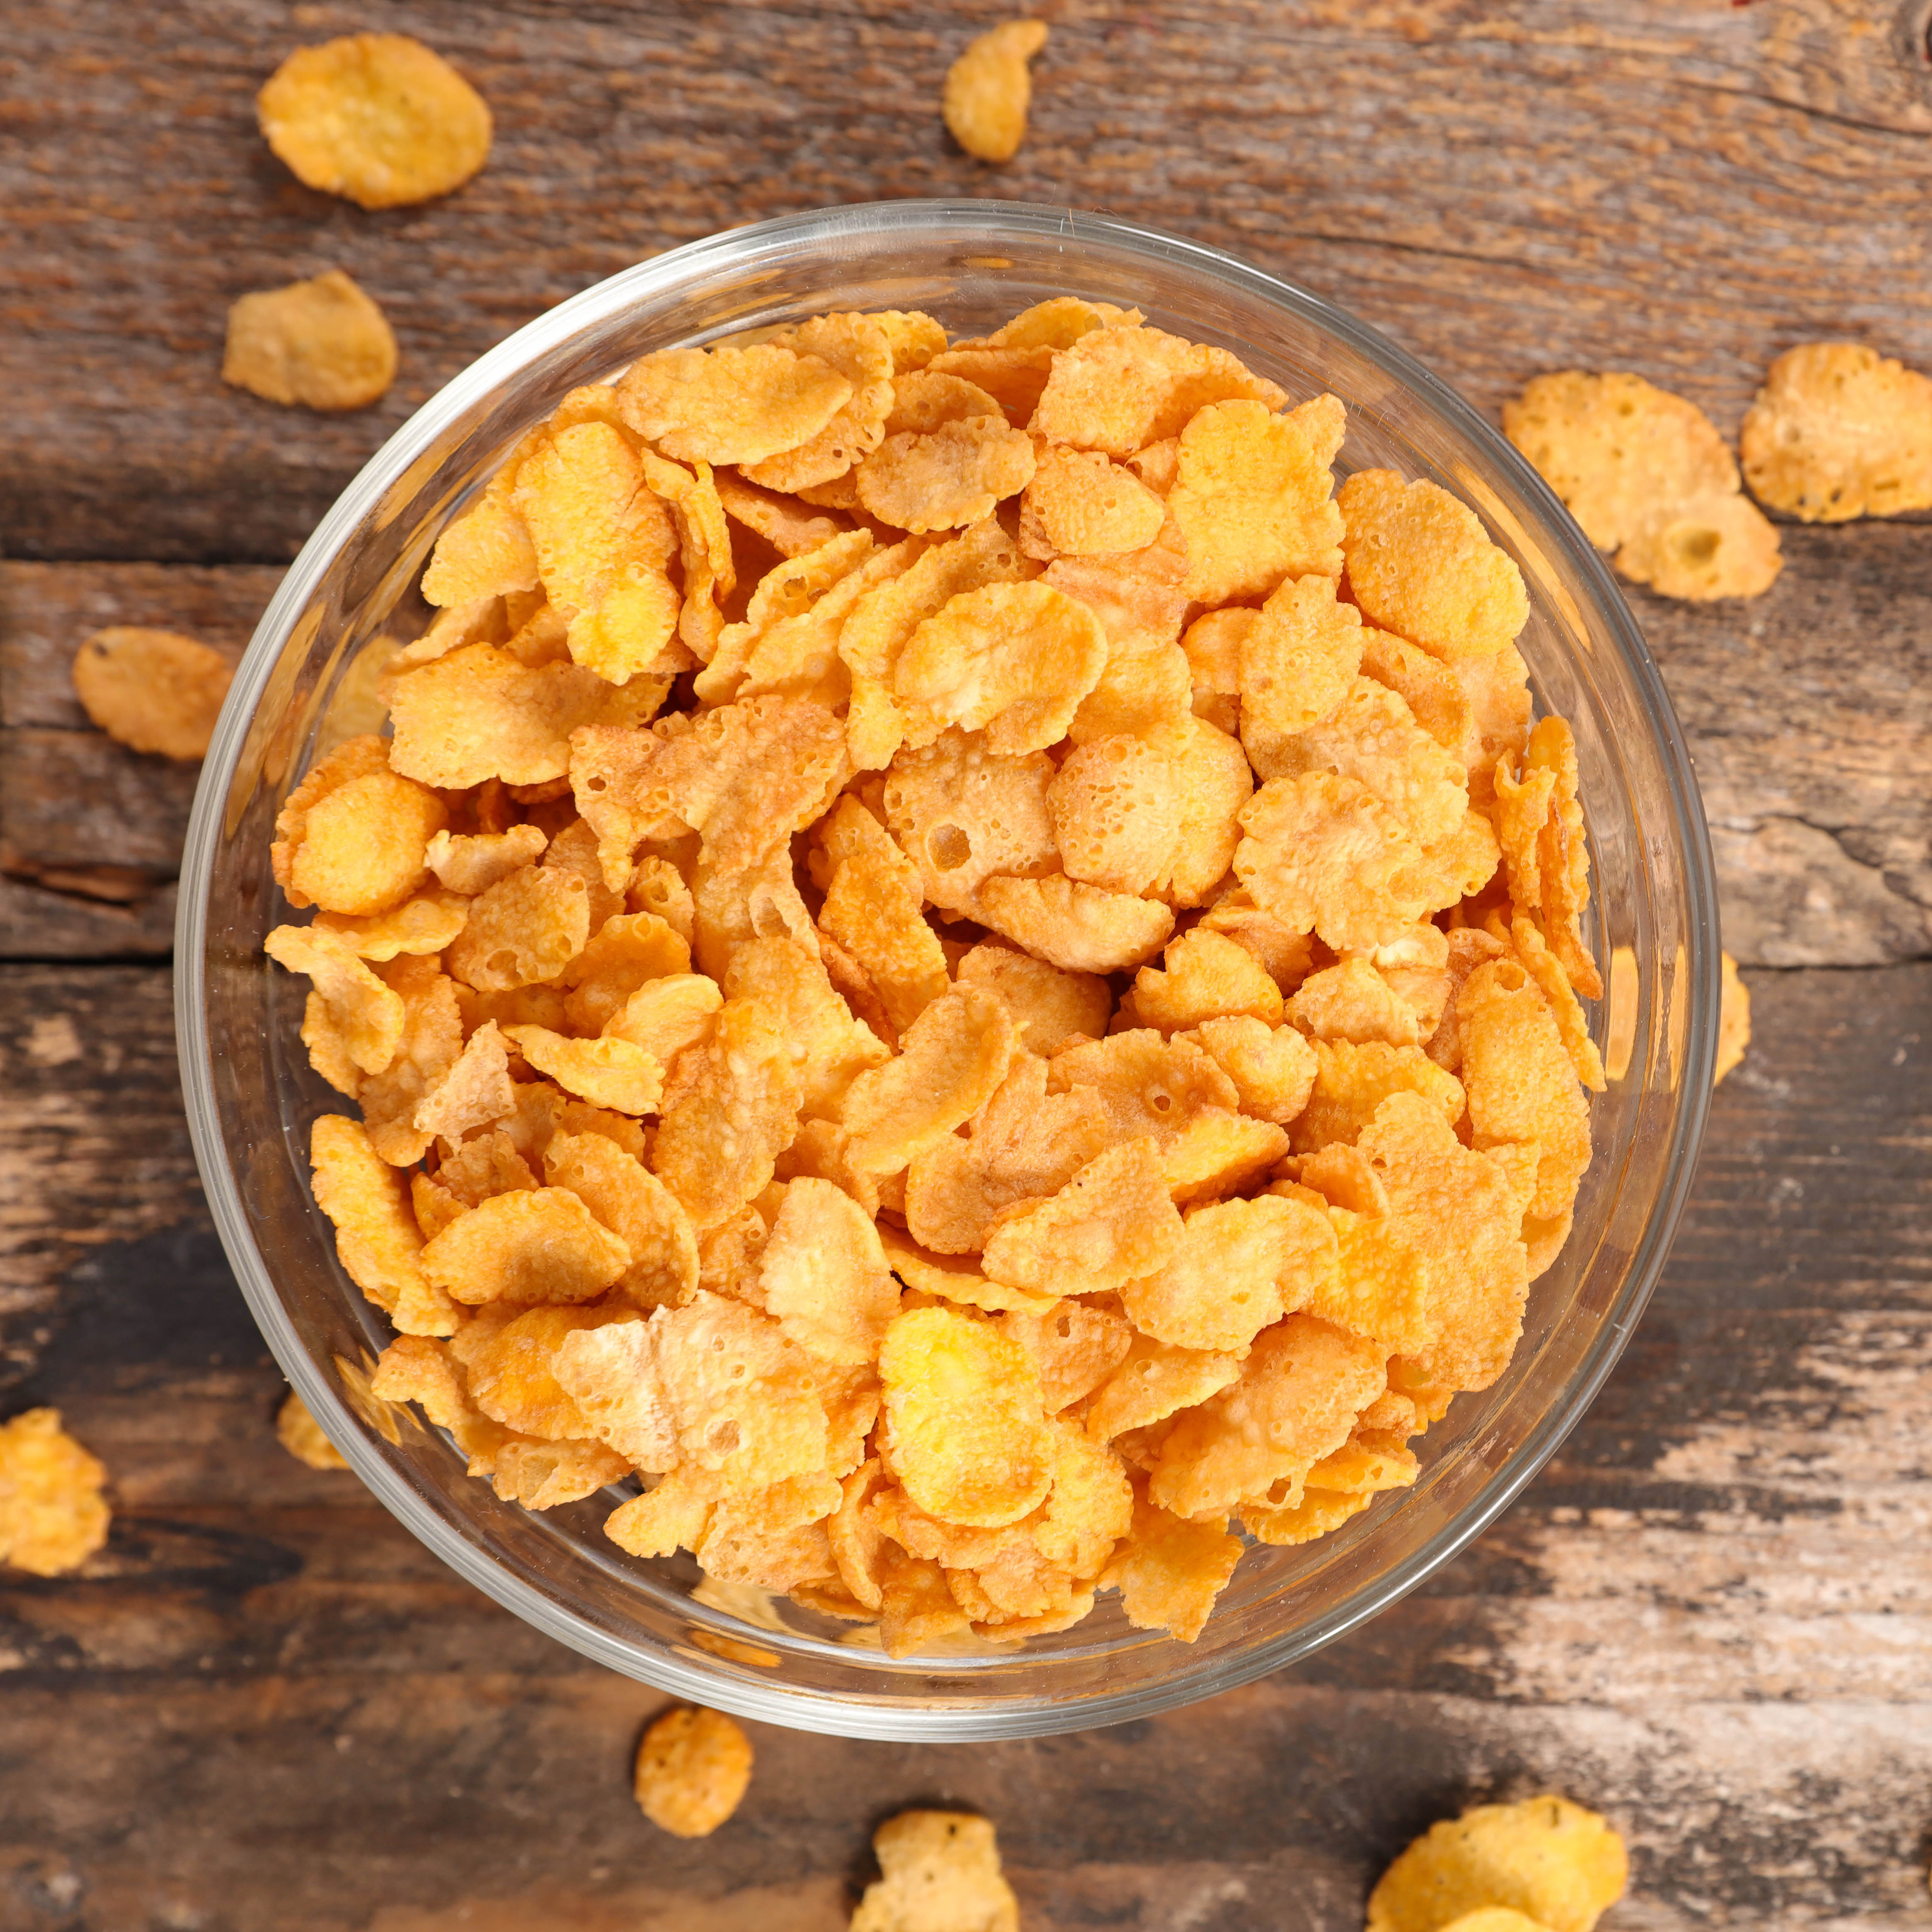 Looking for healthy meals for breakfast? Thistle has a variety of great alternatives for your usual Cornflakes.